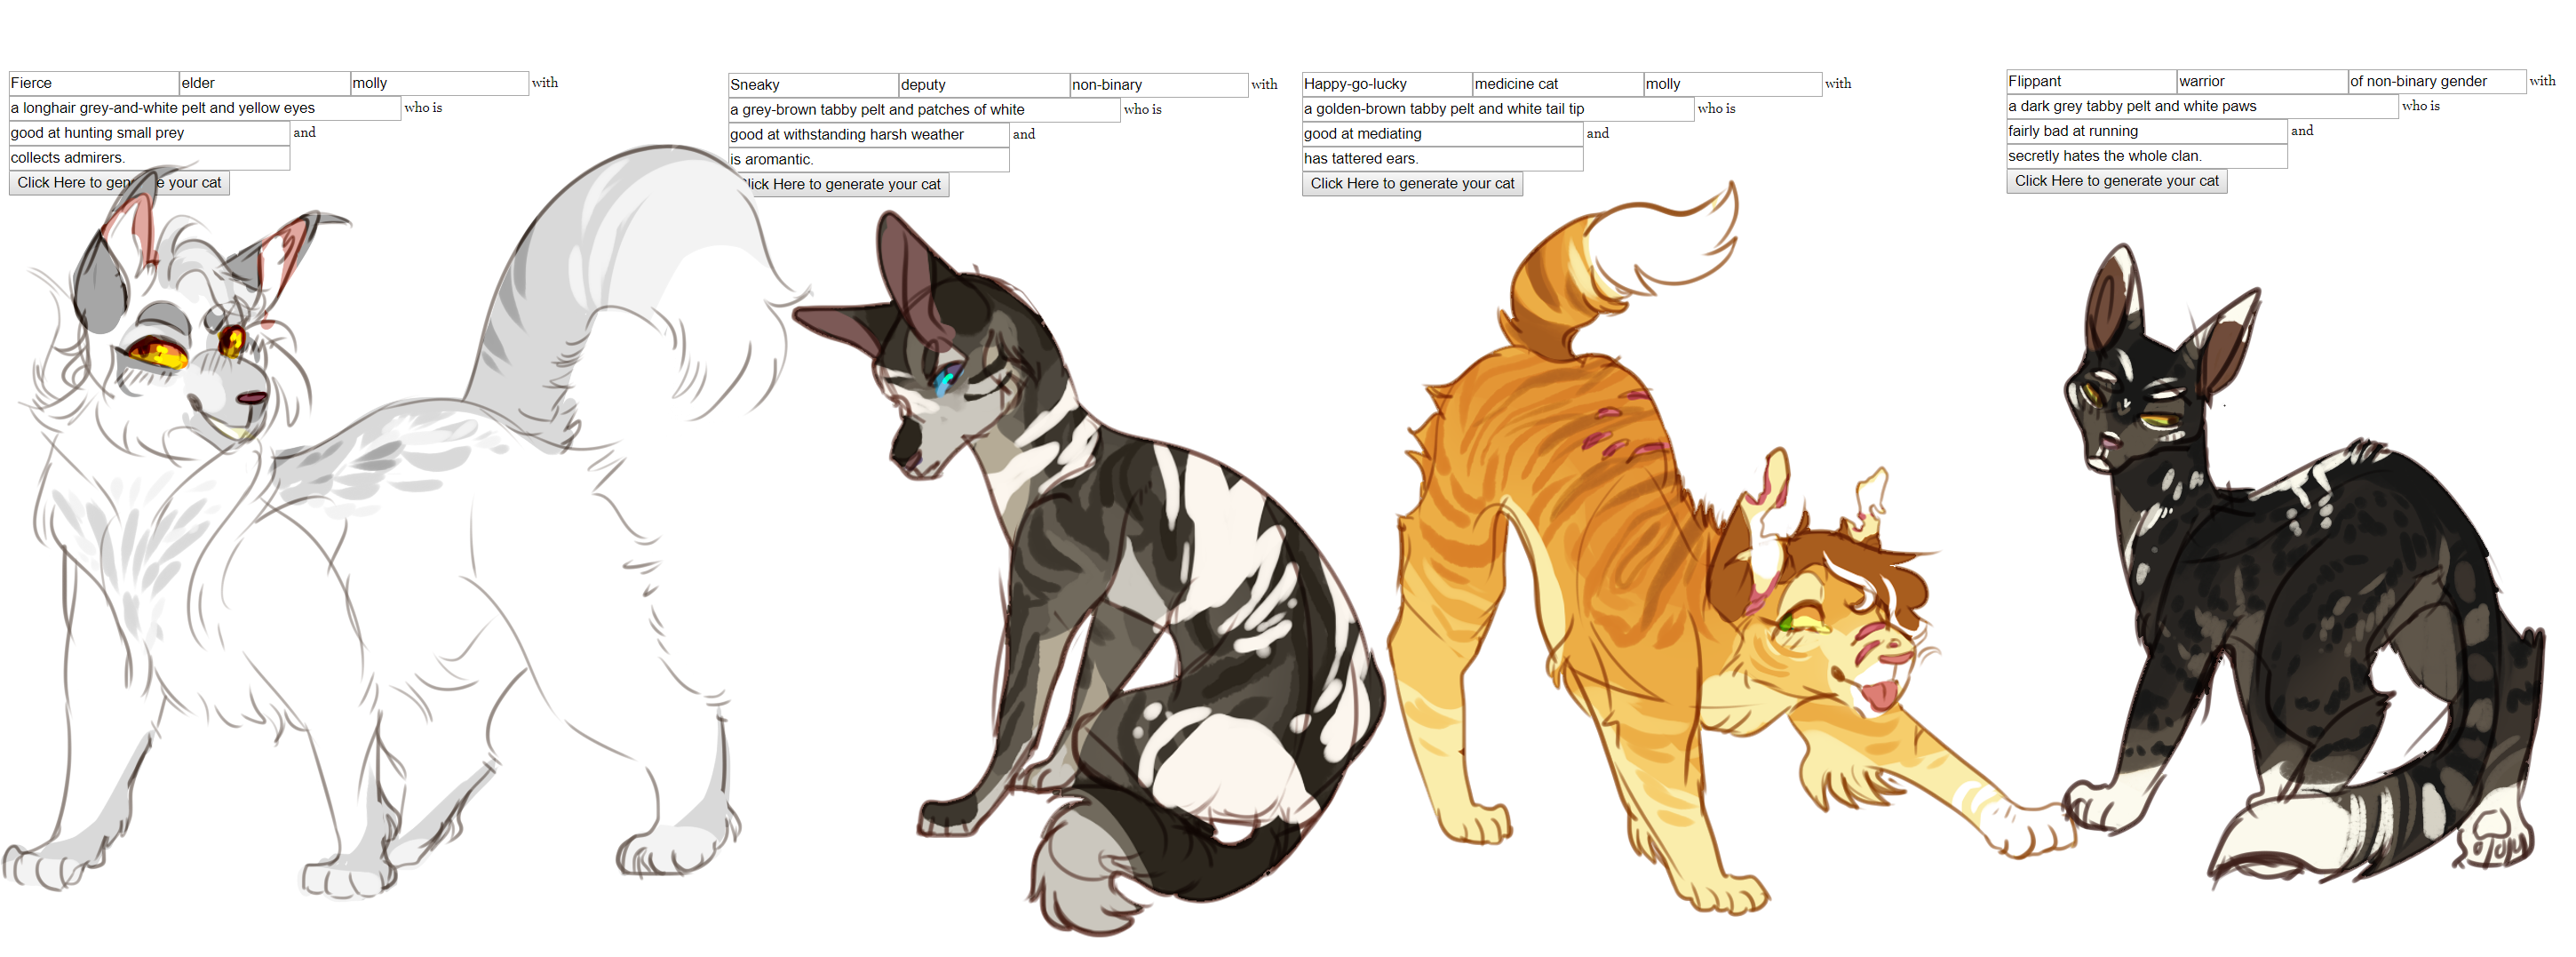 Warrior Cat| Auction| Generator | Open | [4/4] by